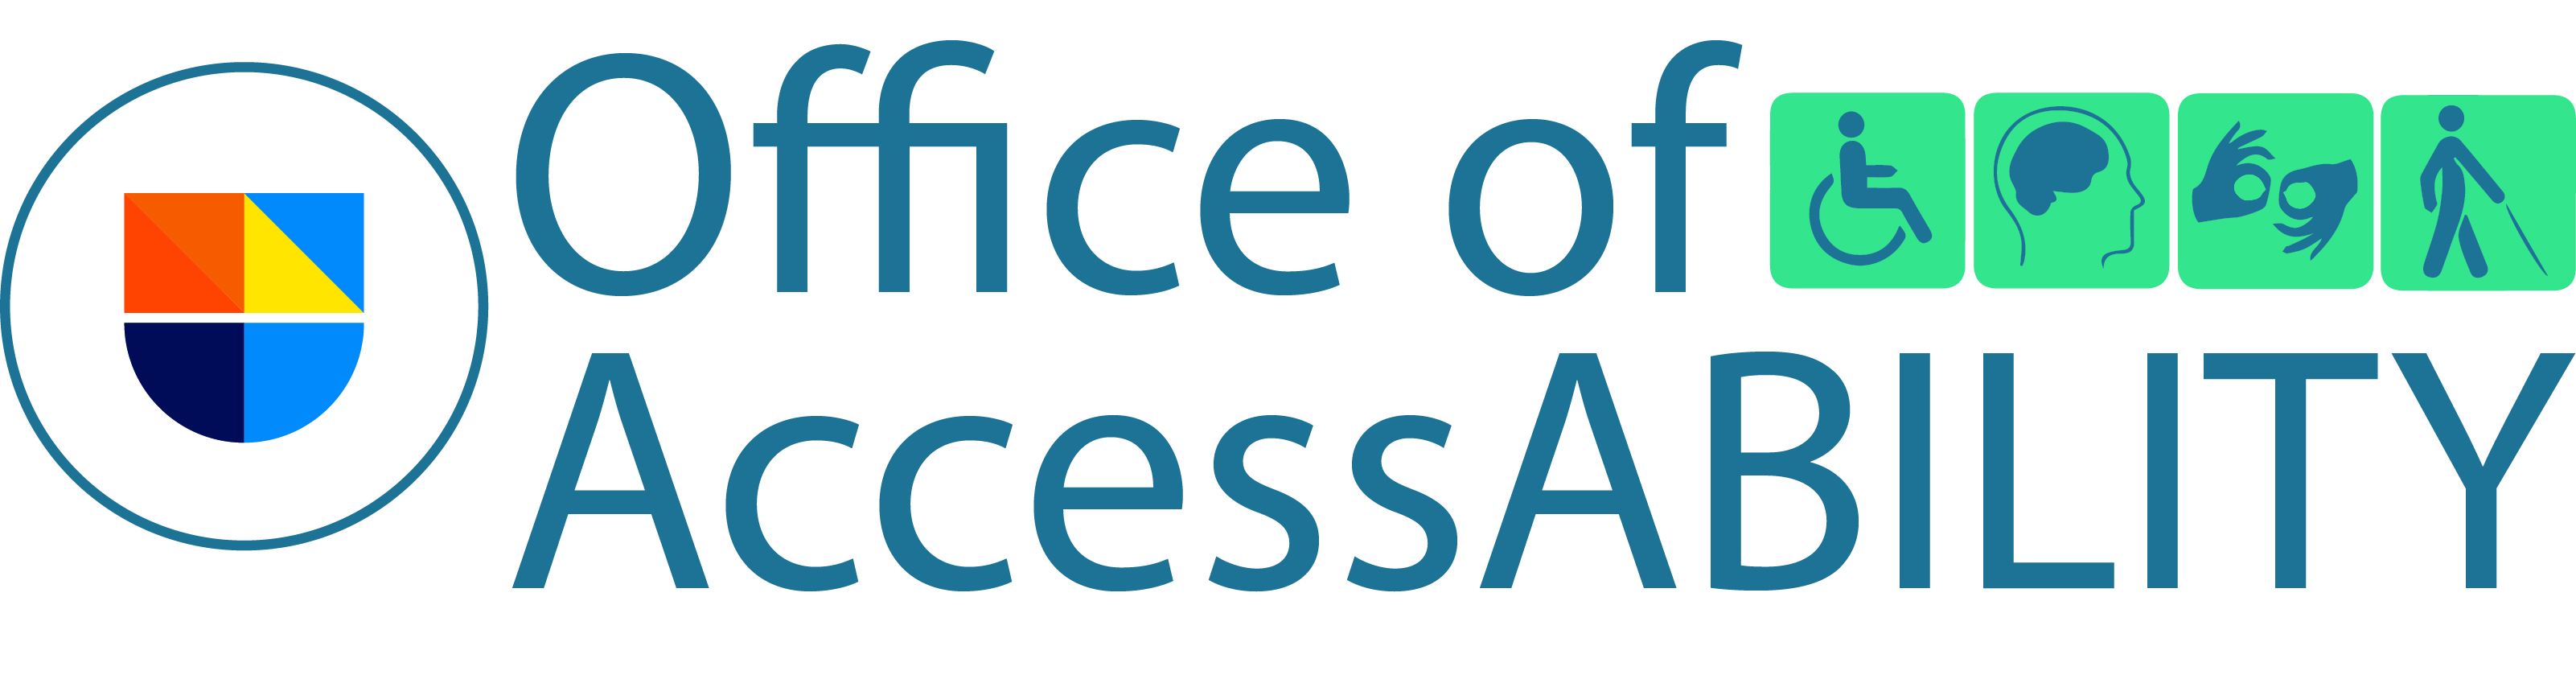 Office of AccessABILITY logo